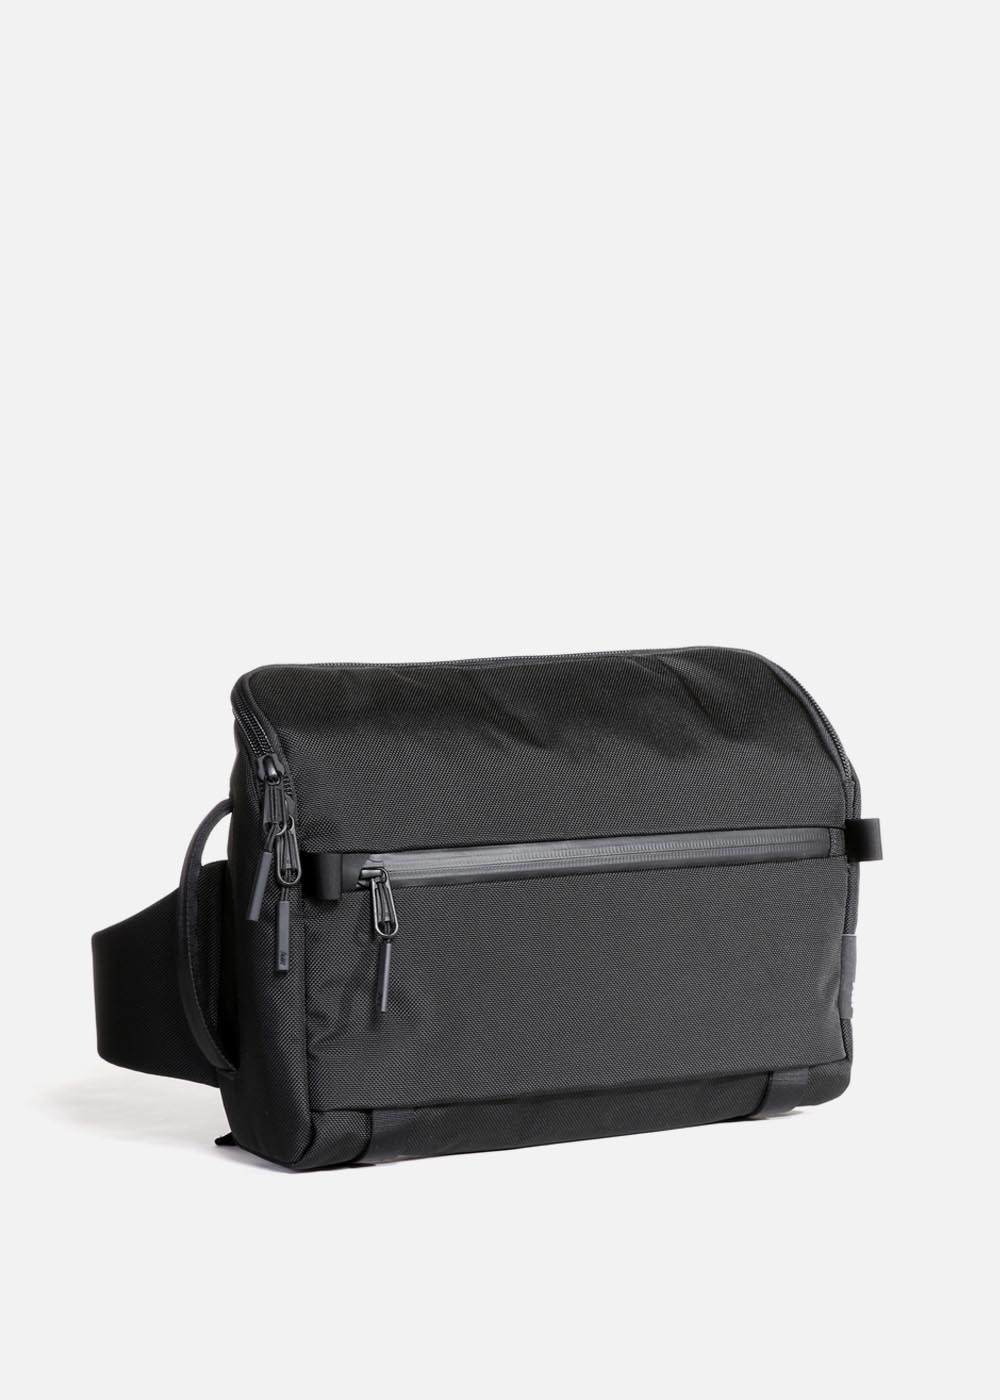 travel_aer_travel_sling_black.JPG